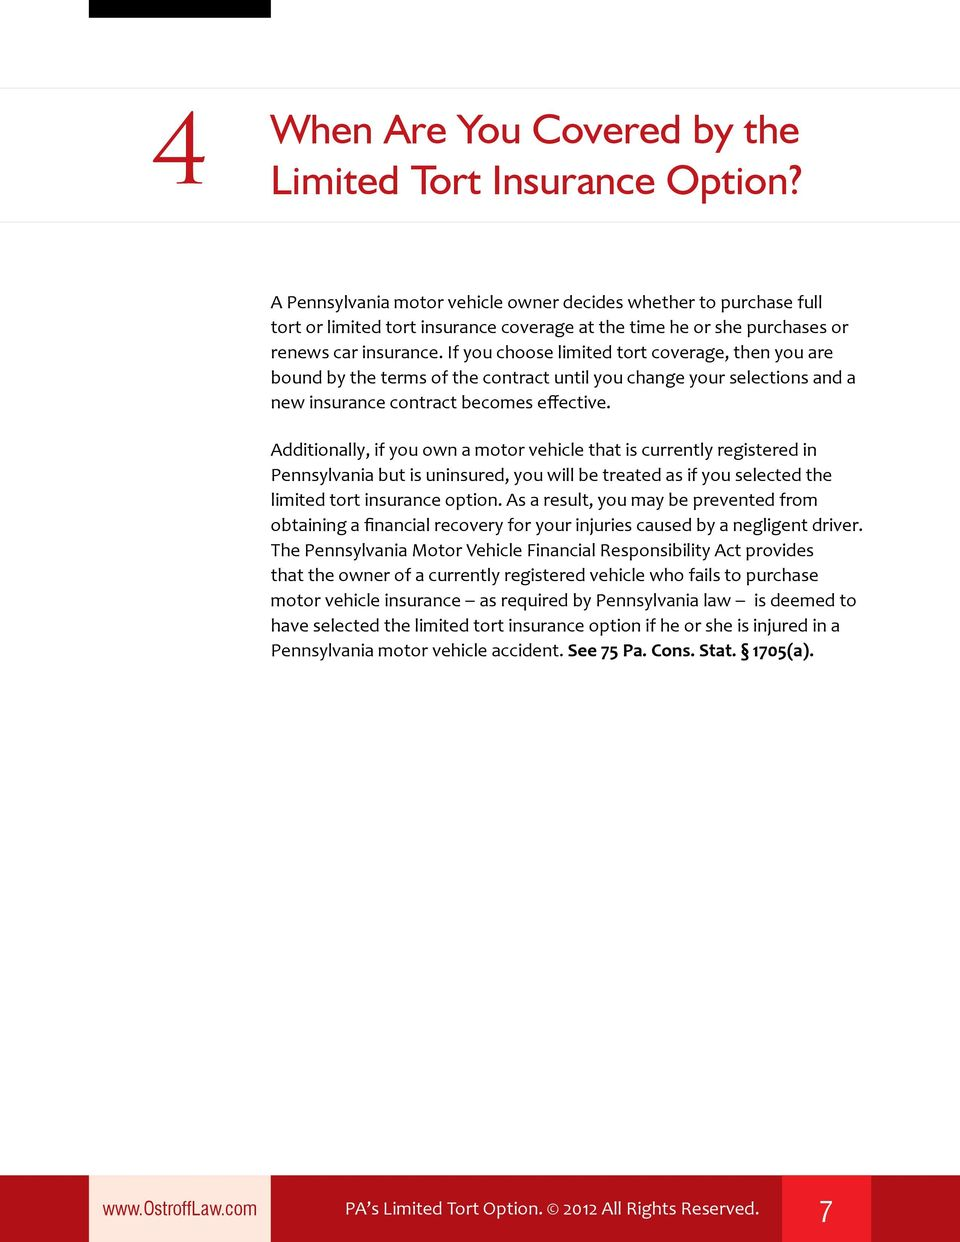 If you choose limited tort coverage, then you are bound by the terms of the contract until you change your selections and a new insurance contract becomes effective.